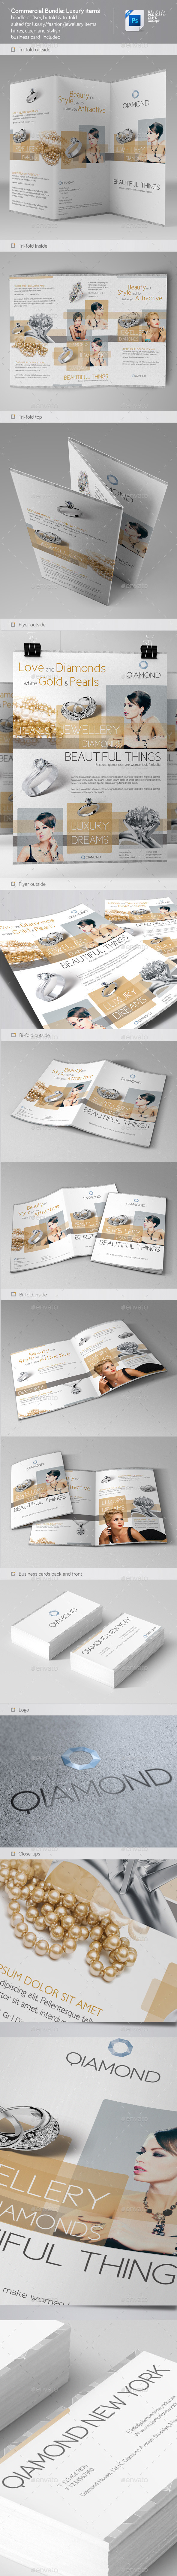 Commercial Flyer Bundle 1: Luxury Items - Commerce Flyers